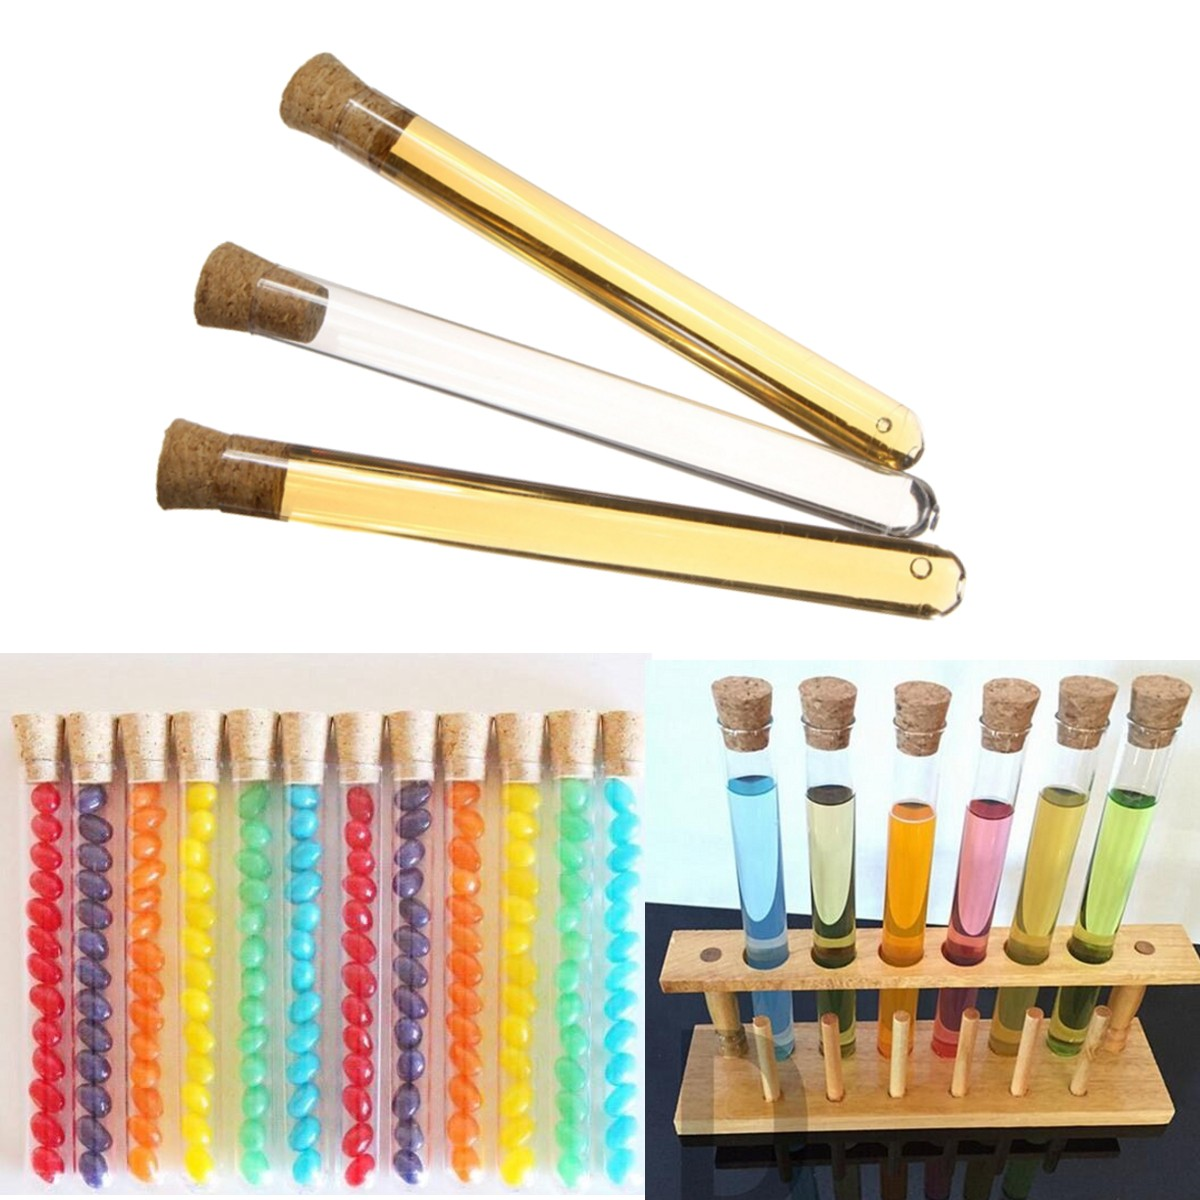 Plastic tubes for crafts - Plastic 50pcs 20ml Test Tubes Corks Party Candy Sugar Container Events Party Catering Crafts Accessories Events